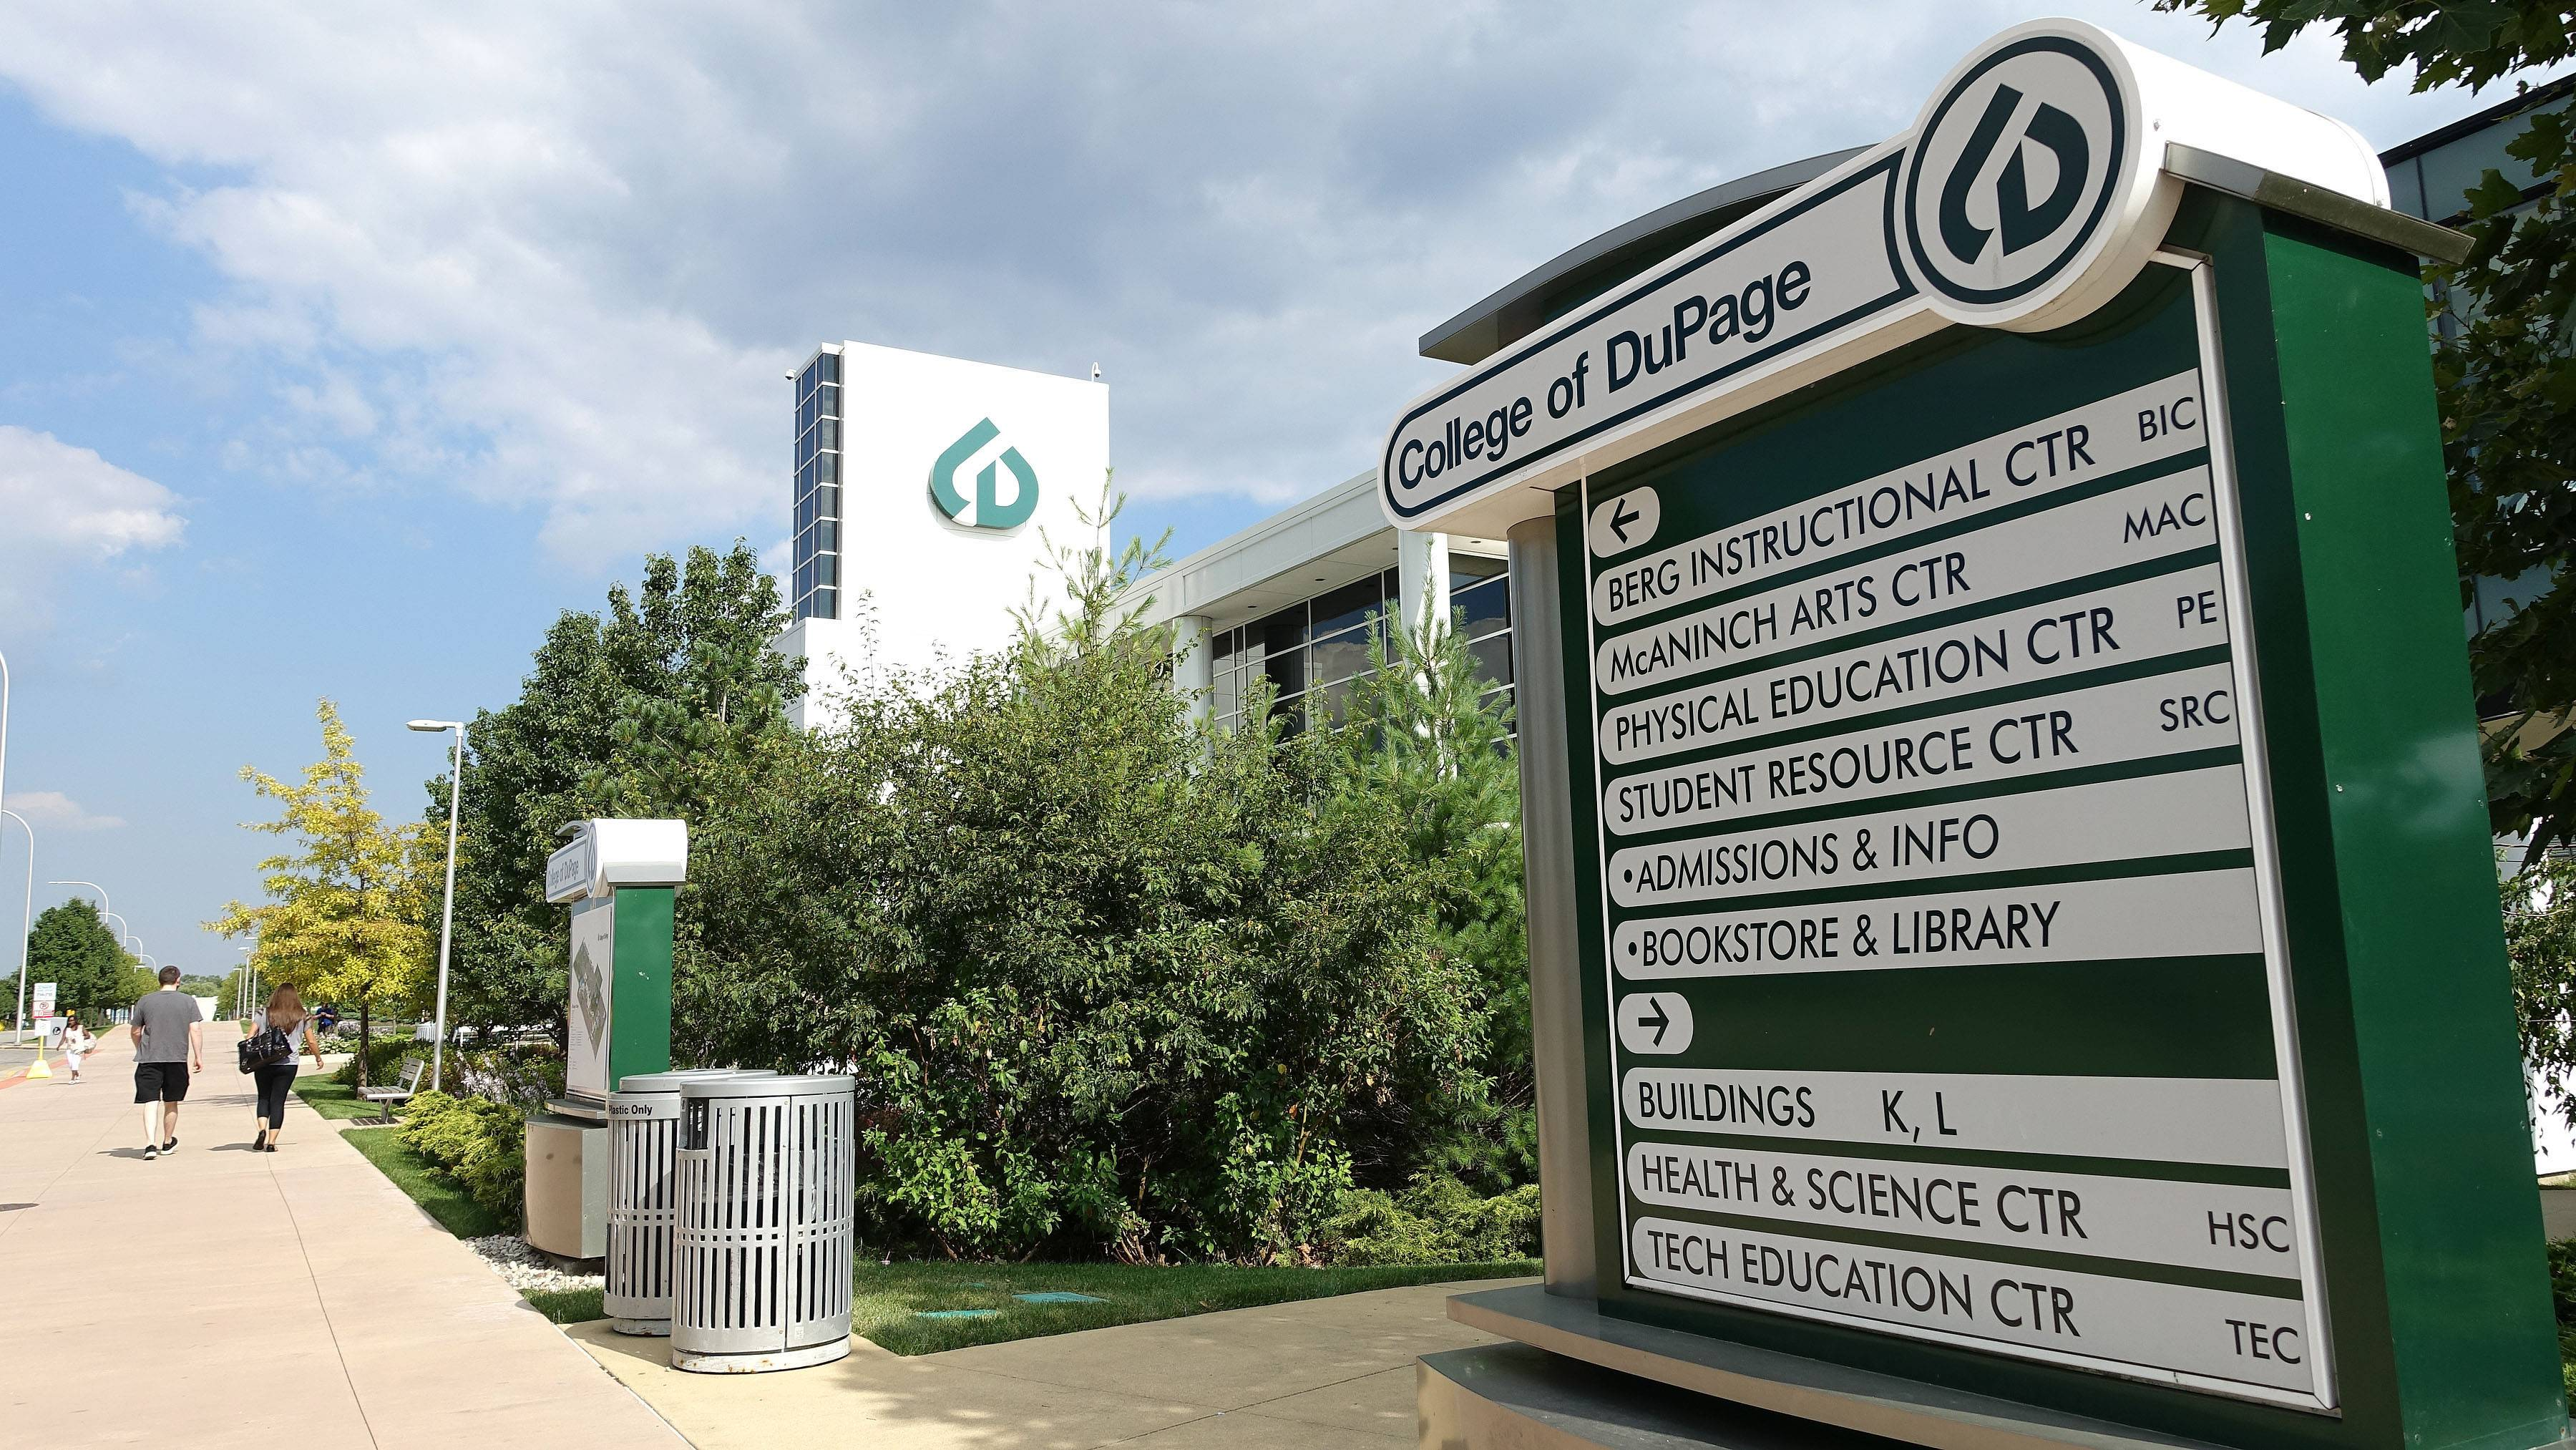 College of DuPage is going to receive more than $700,000 in state funding to help pay for a variety of improvements at its Glen Ellyn campus and a center in Carol Stream.